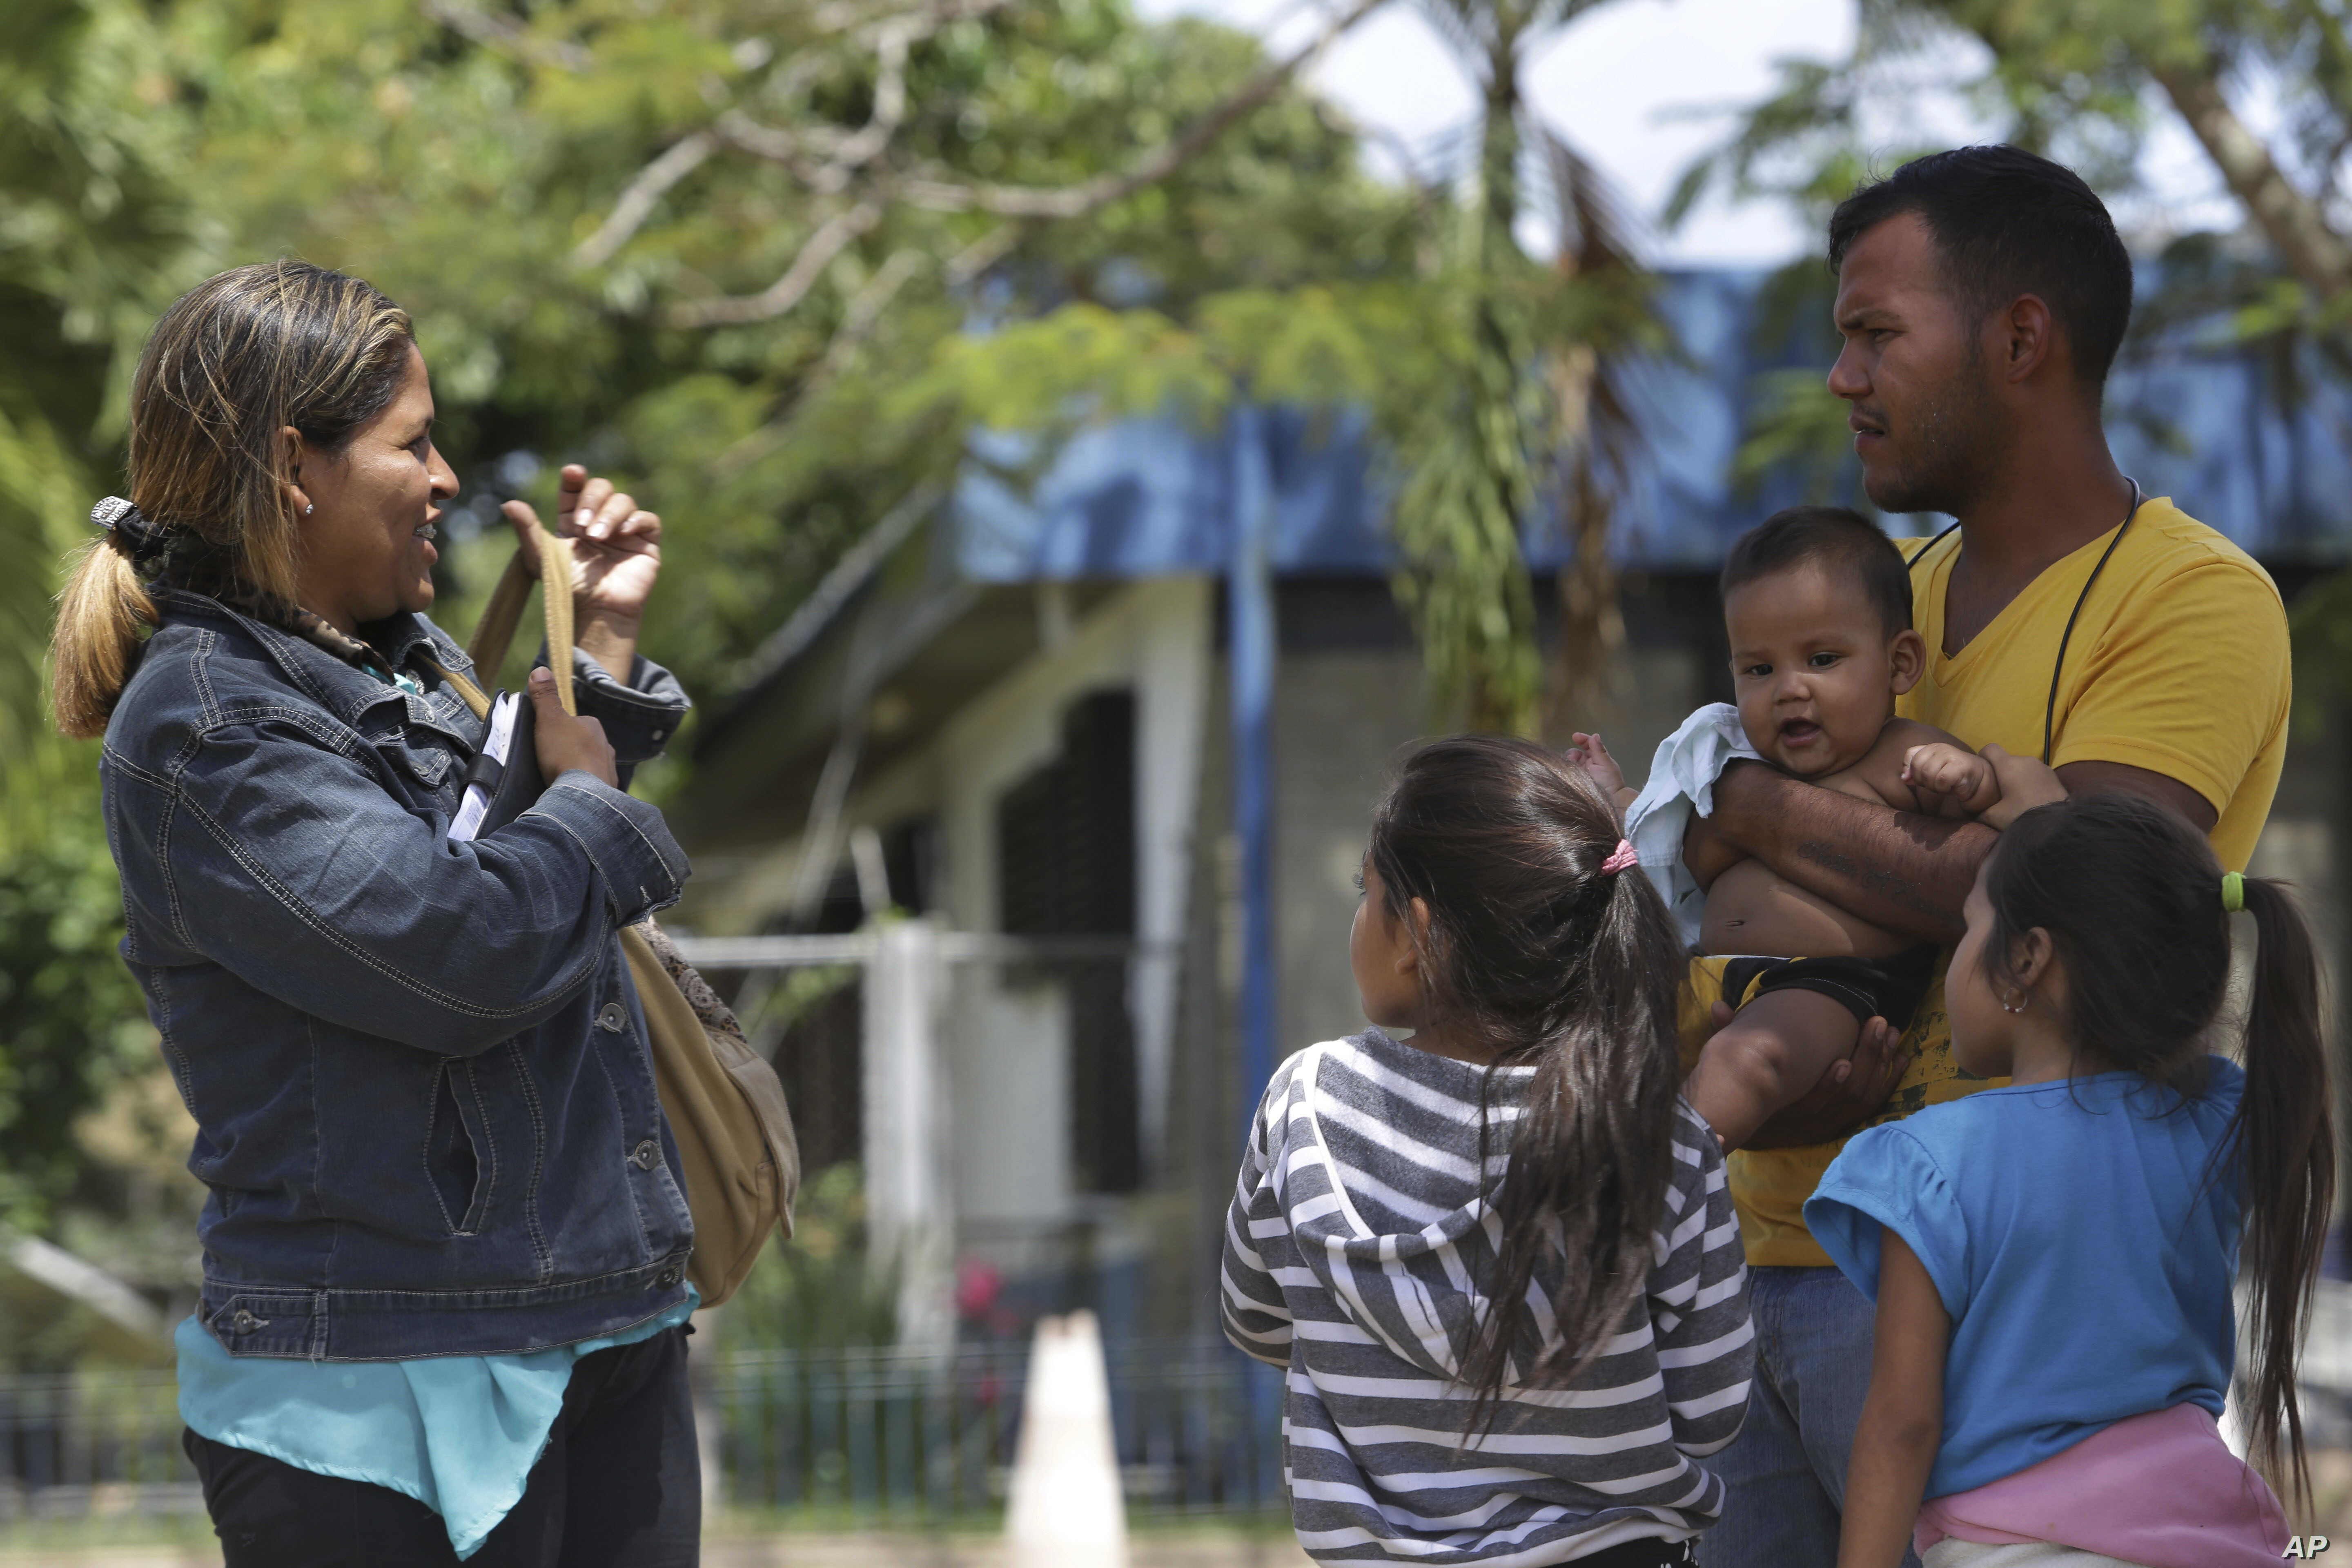 In this March 9, 2018 photo, Venezuelan Kritce Montero and her husband Hector Espinosa stand with their children, 6-month-old Hector, their 7-year-old daughter, right, and an unidentified family member, after getting their documents to enter Brazil.